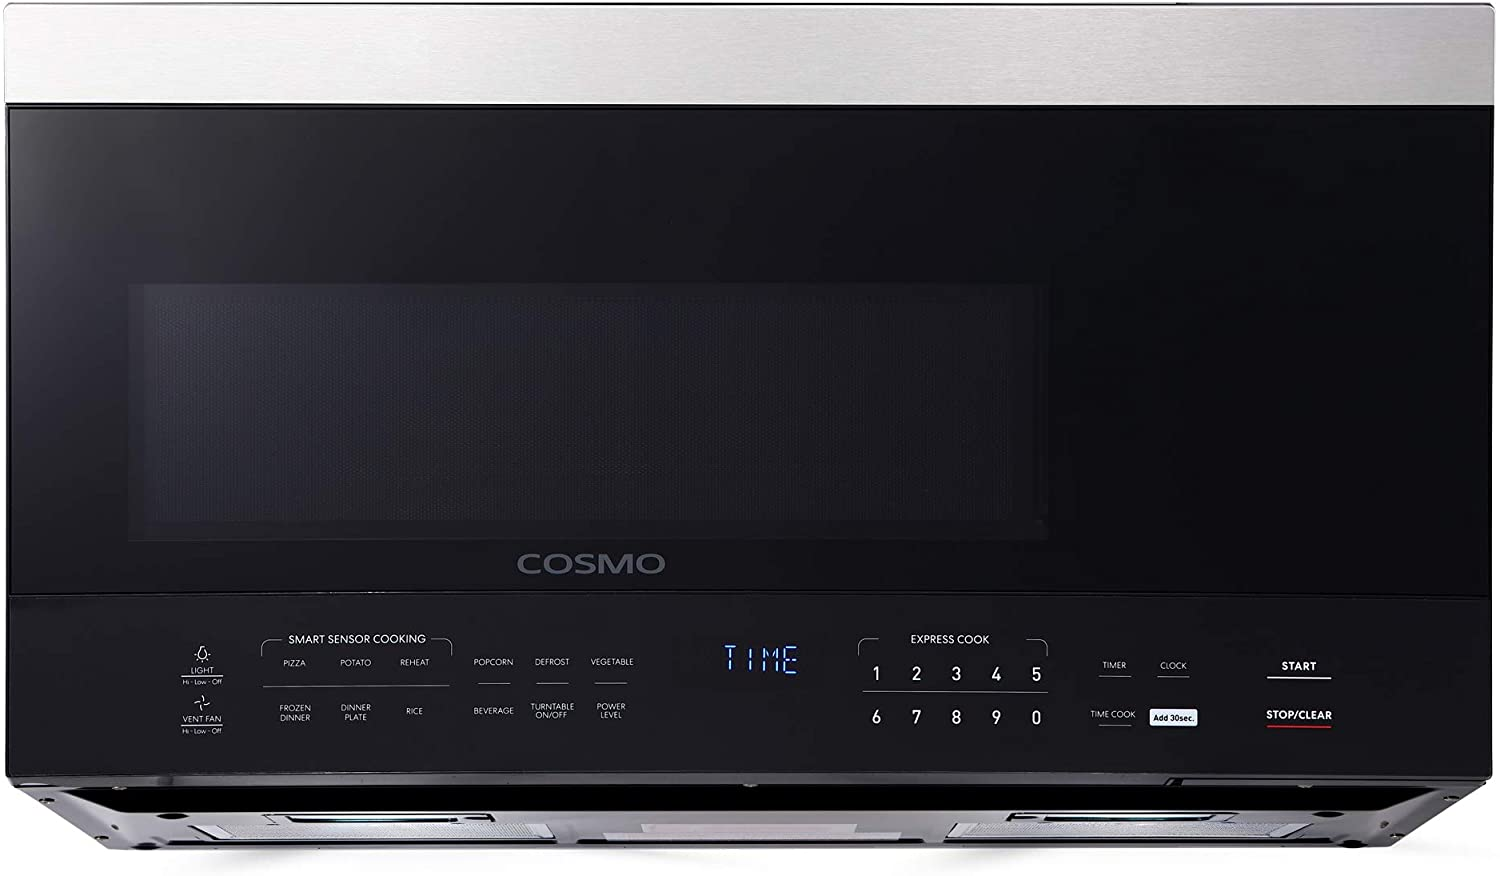 Cosmo COS-3016ORM1SS Over the Range Microwave Oven with Vent Fan, Smart Sensor, Touch Presets, 1000W & 1.6 cu. ft. Capacity, 30 inch, Black/Stainless Steel